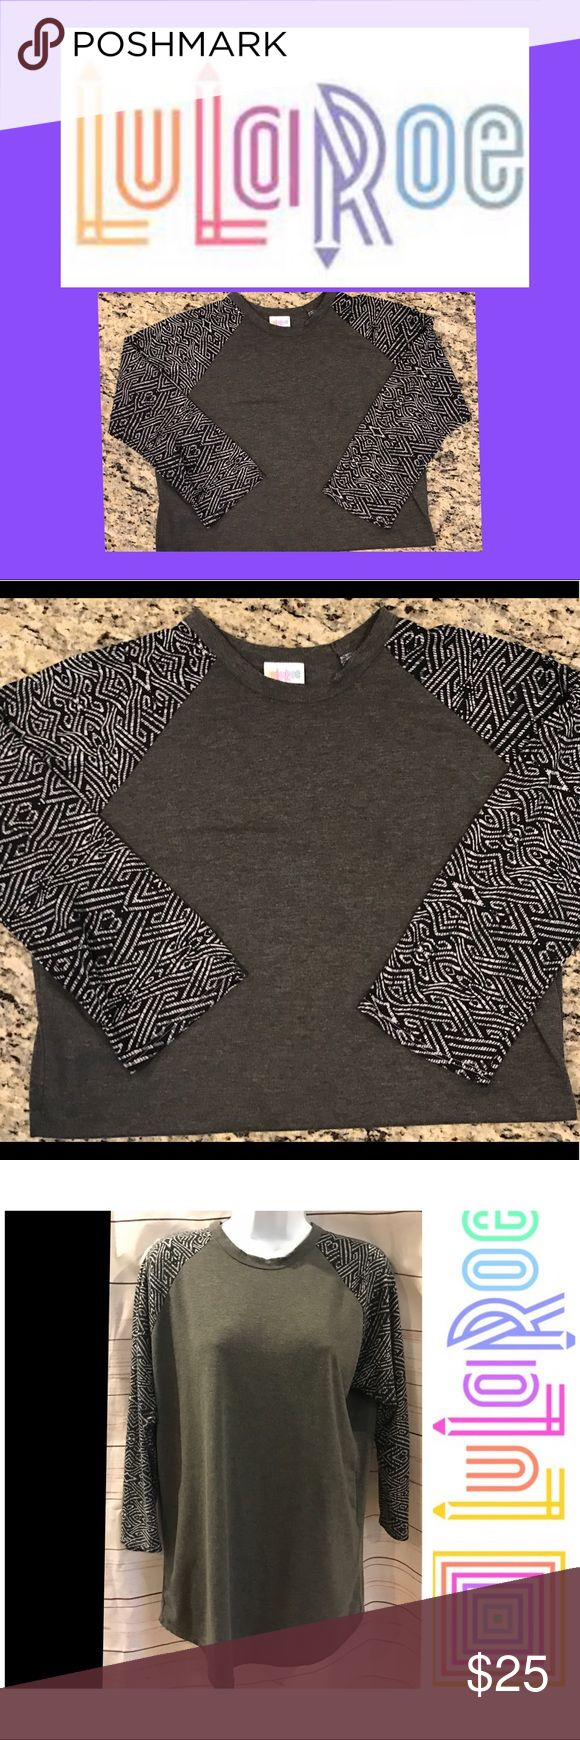 "LuLaRoe 3/4 sleeve top LuLaRoe 3/4 sleeve top. Adorable grey round neck tee shirt.  3/4 sleeves with cute Aztec design.  Poly/spandex.  Super comfortable and light!  29"" long, 21"" across chest.  EUC LuLaRoe Tops Tees - Long Sleeve"